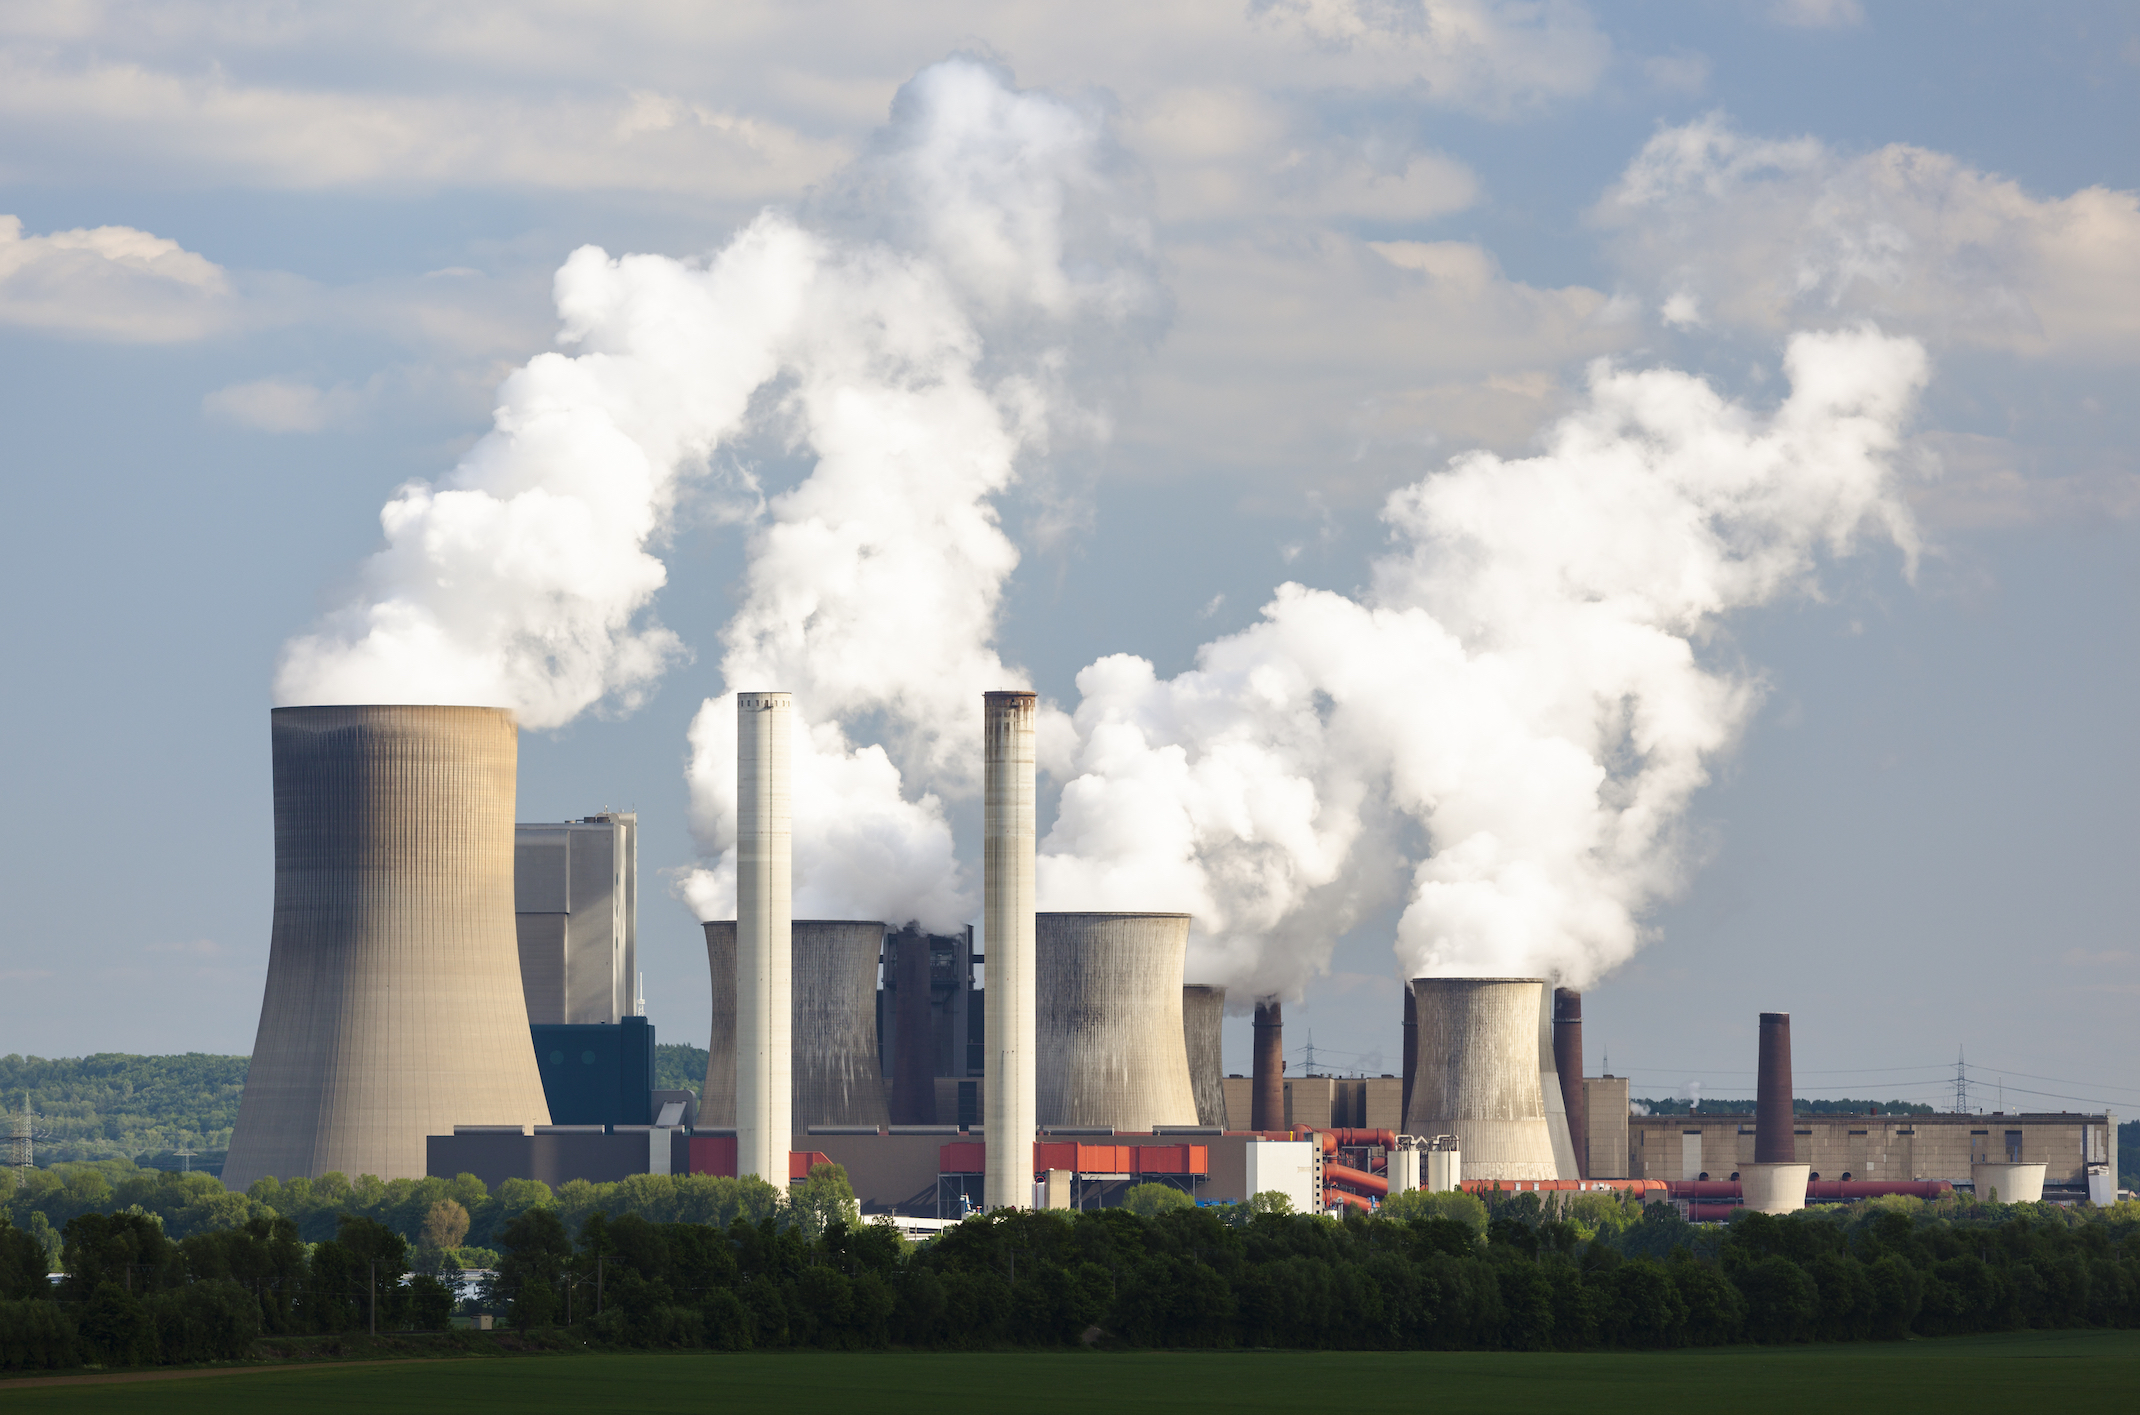 New research shows that closing coal and oil power plants actually improved human health – lowering the rate of preterm births in neighboring communities and boosting fertility.